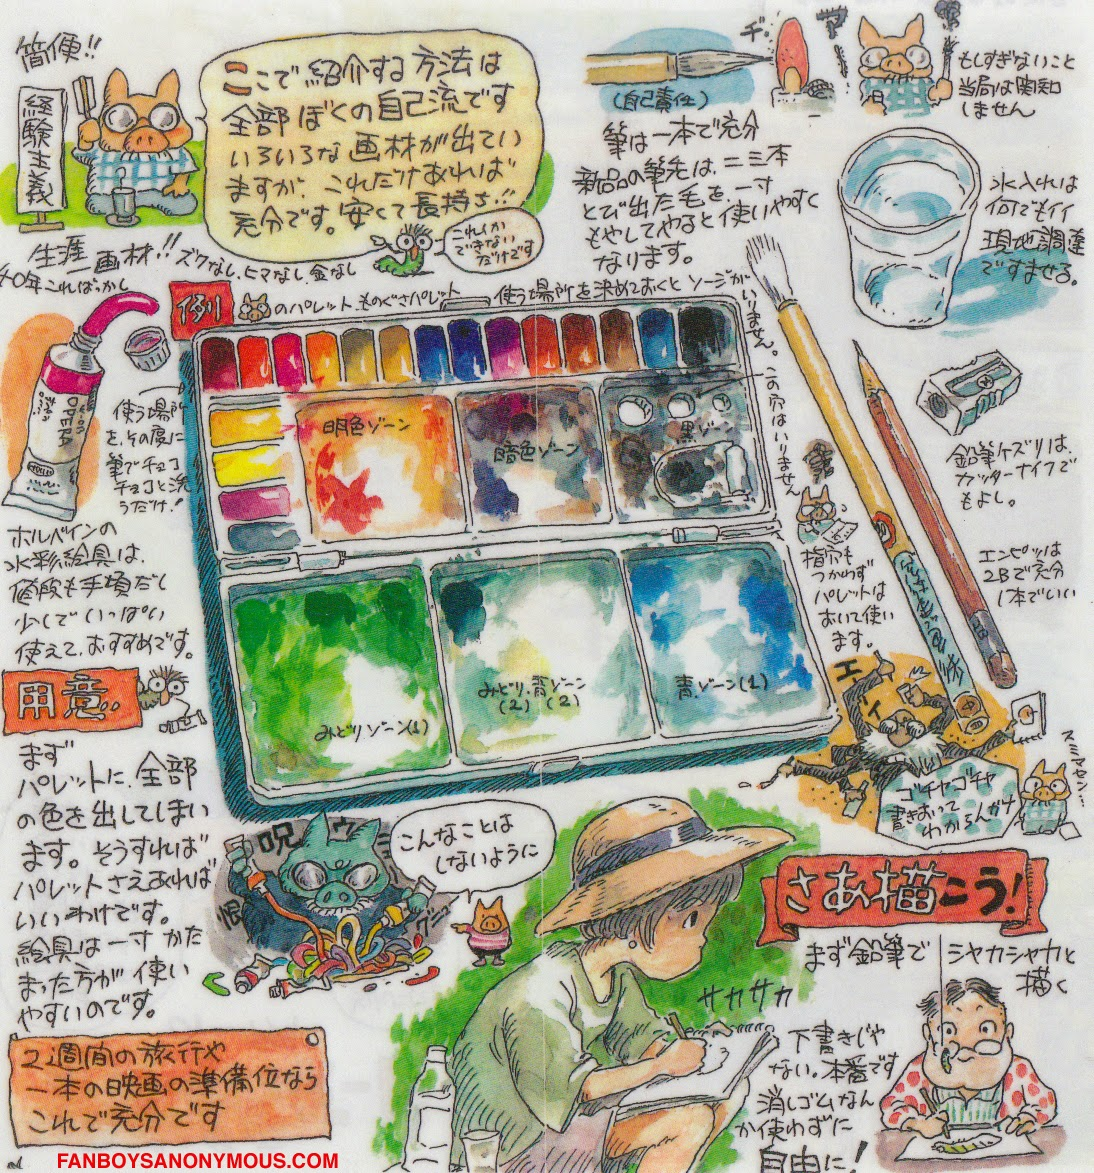 hayao miyazaki watercolor advice drawing technique image manga